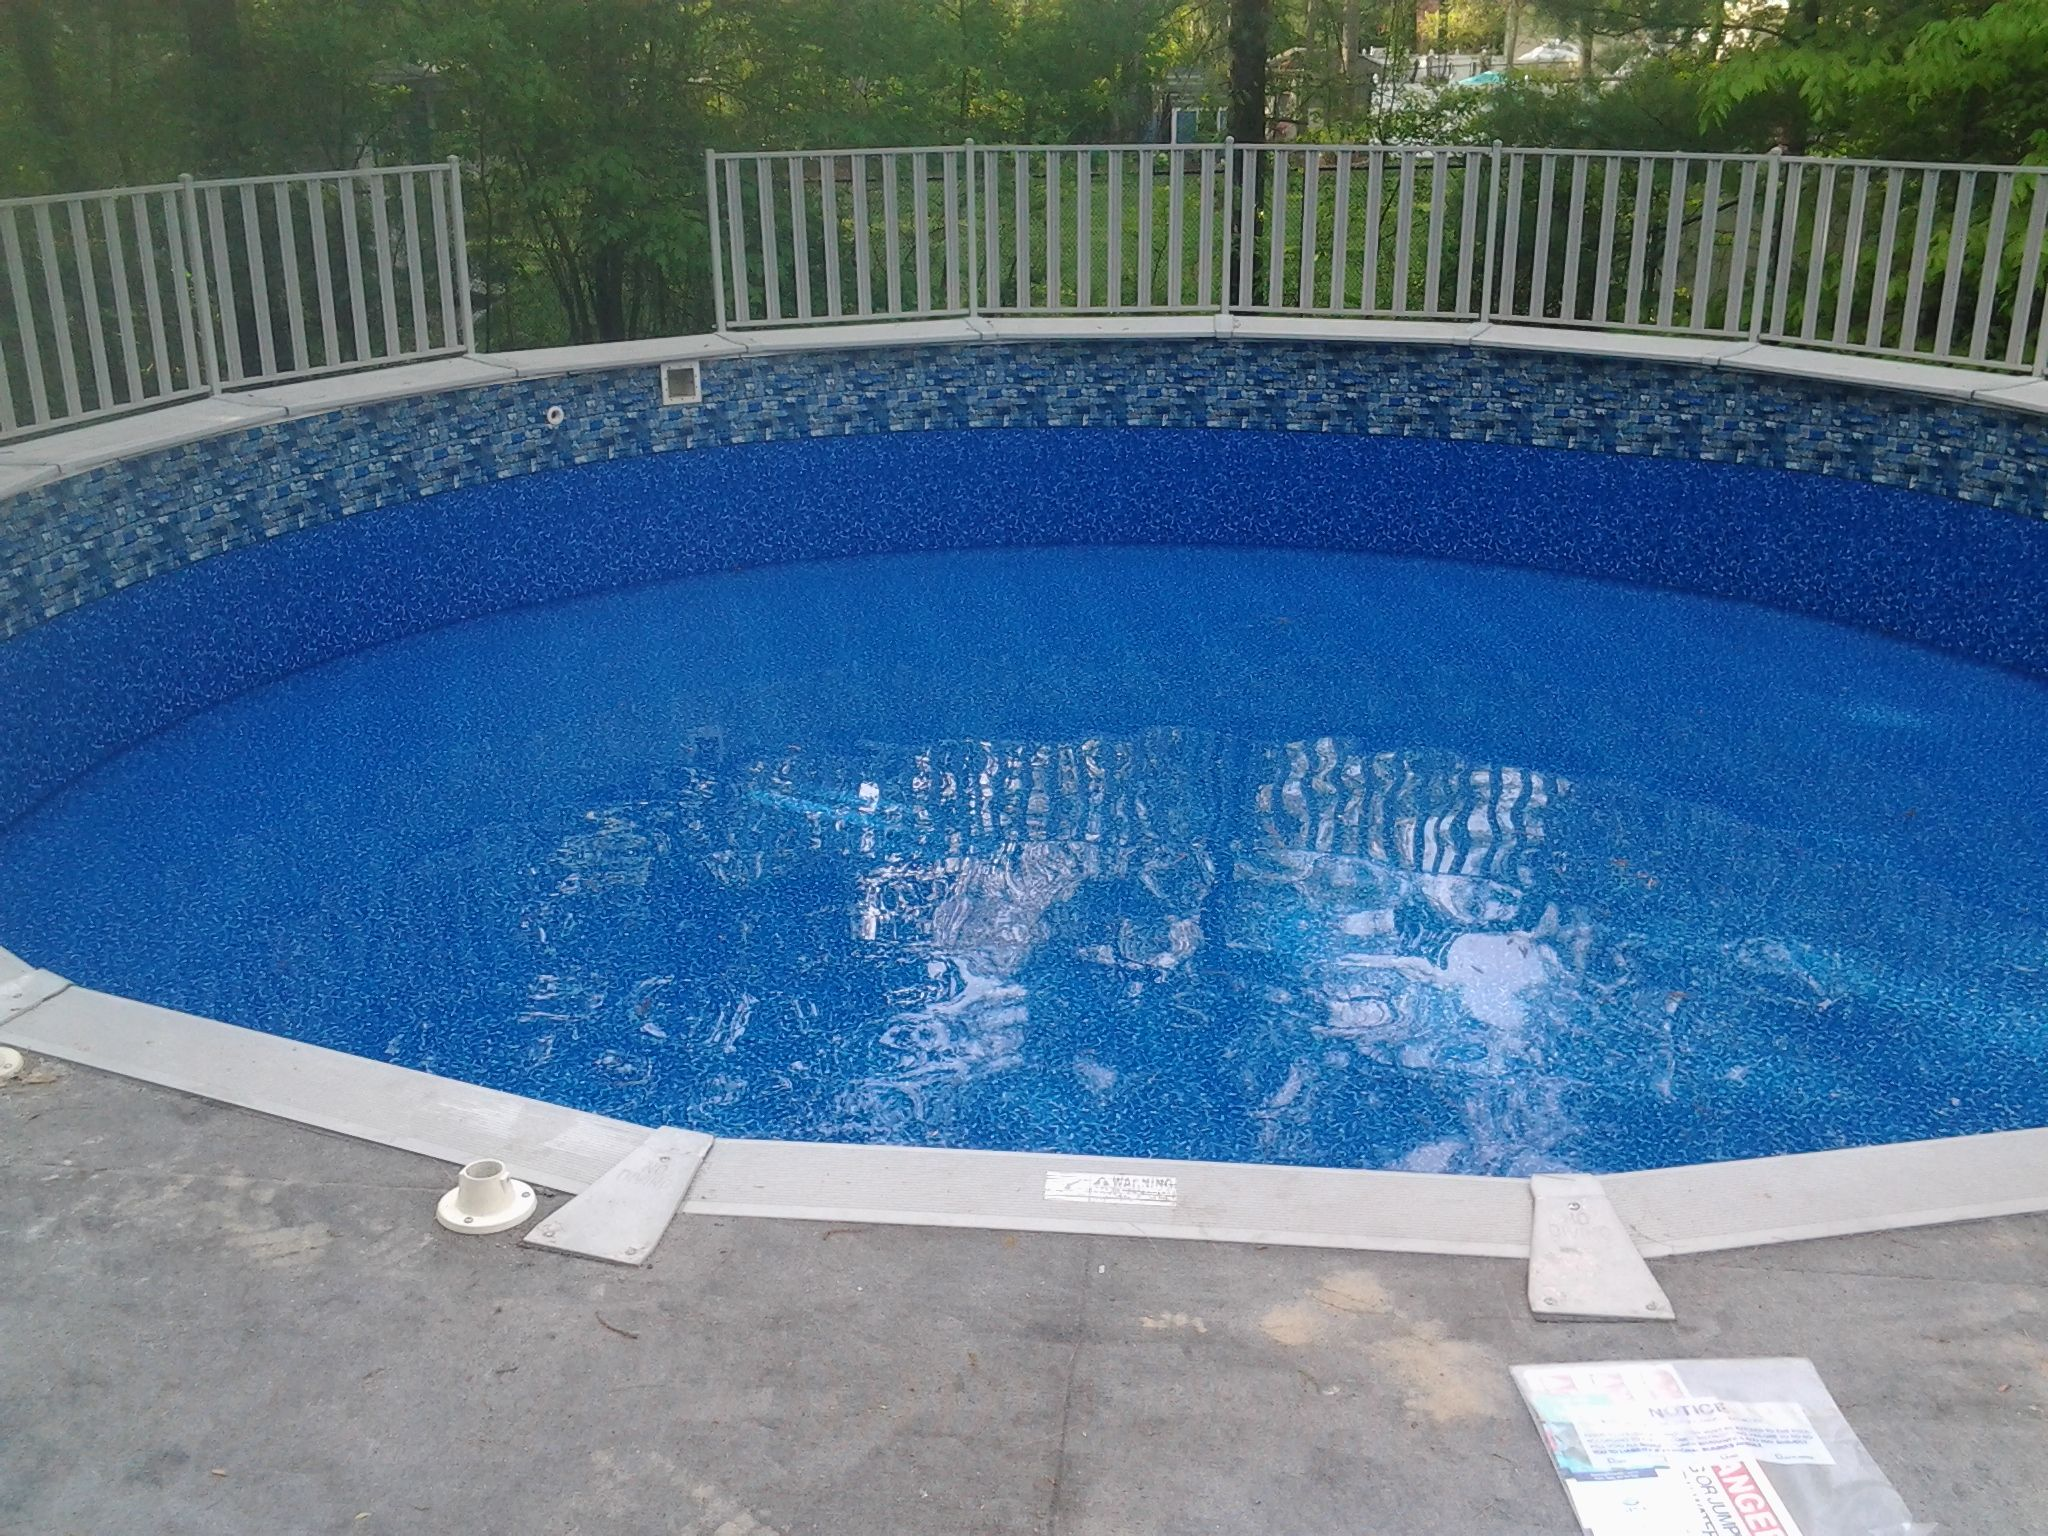 Fieldstone liner replacement in rockland ma june 2014 for Swimming pool liners